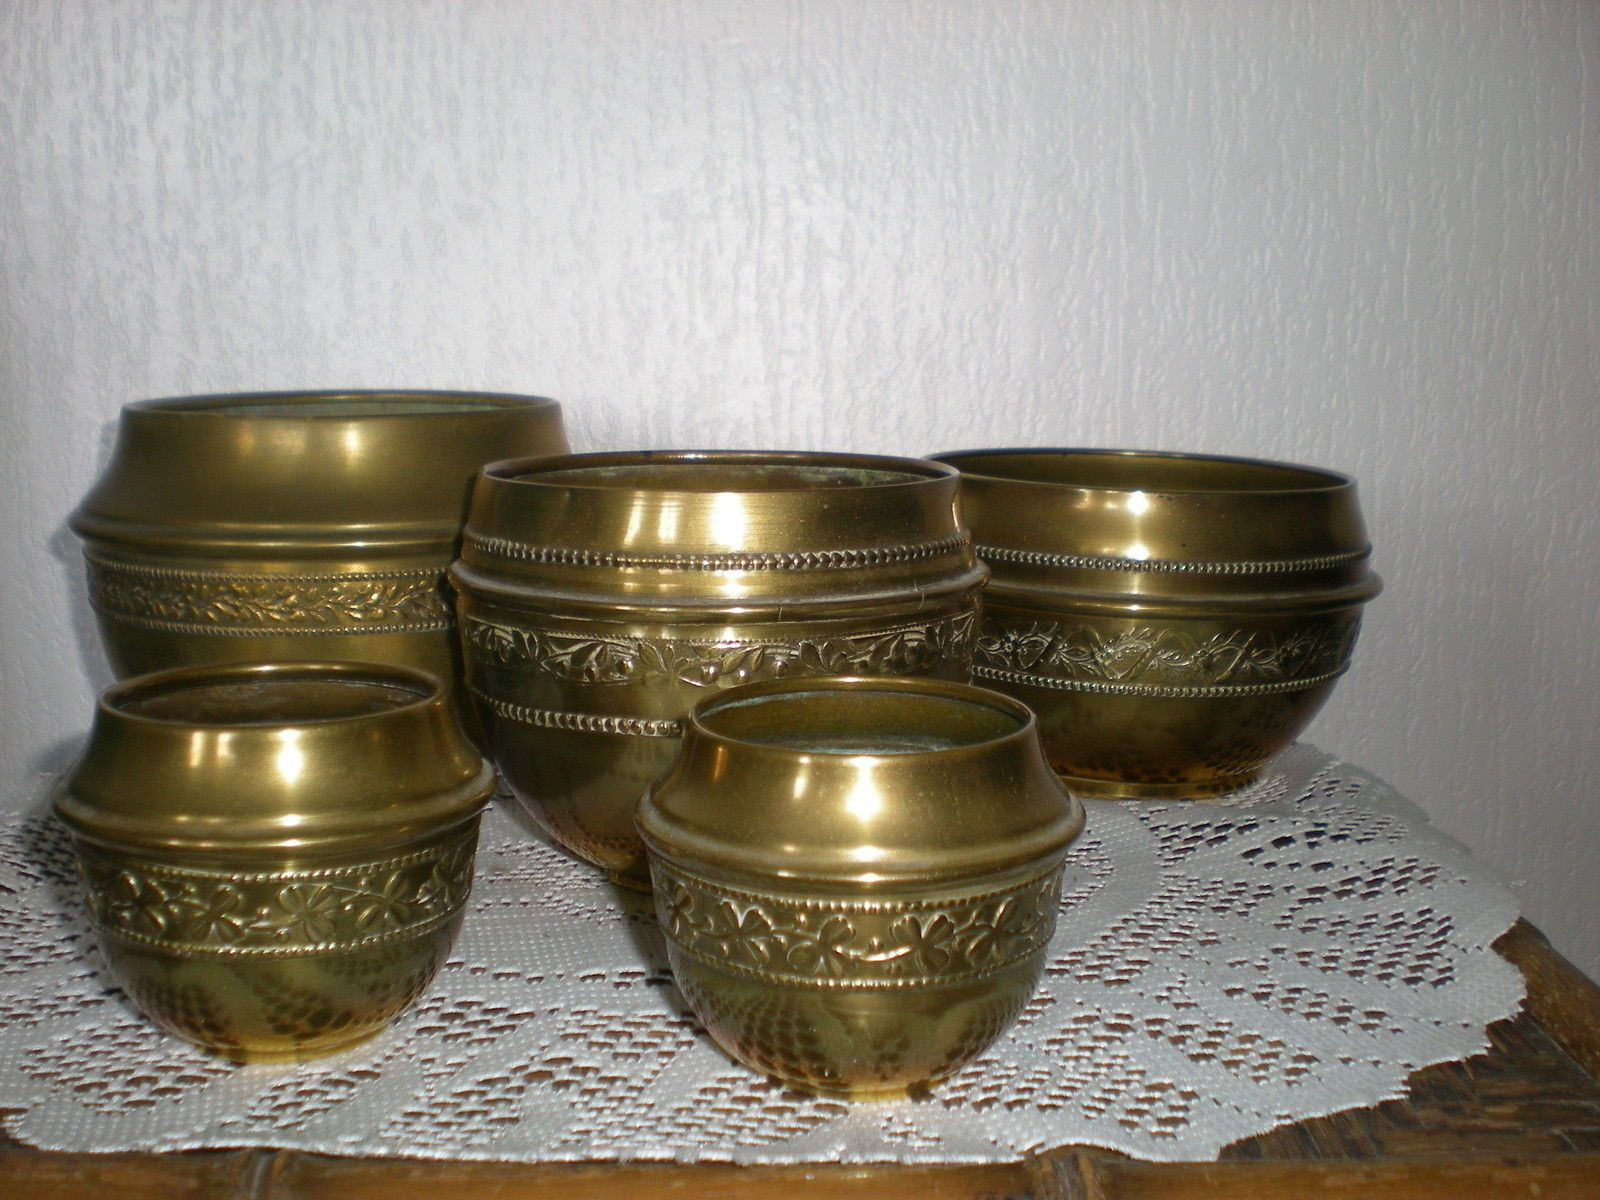 lot de 5 caches pots en laiton cuivre art nouveau 1920 for sale eur 51 99 see photos money. Black Bedroom Furniture Sets. Home Design Ideas